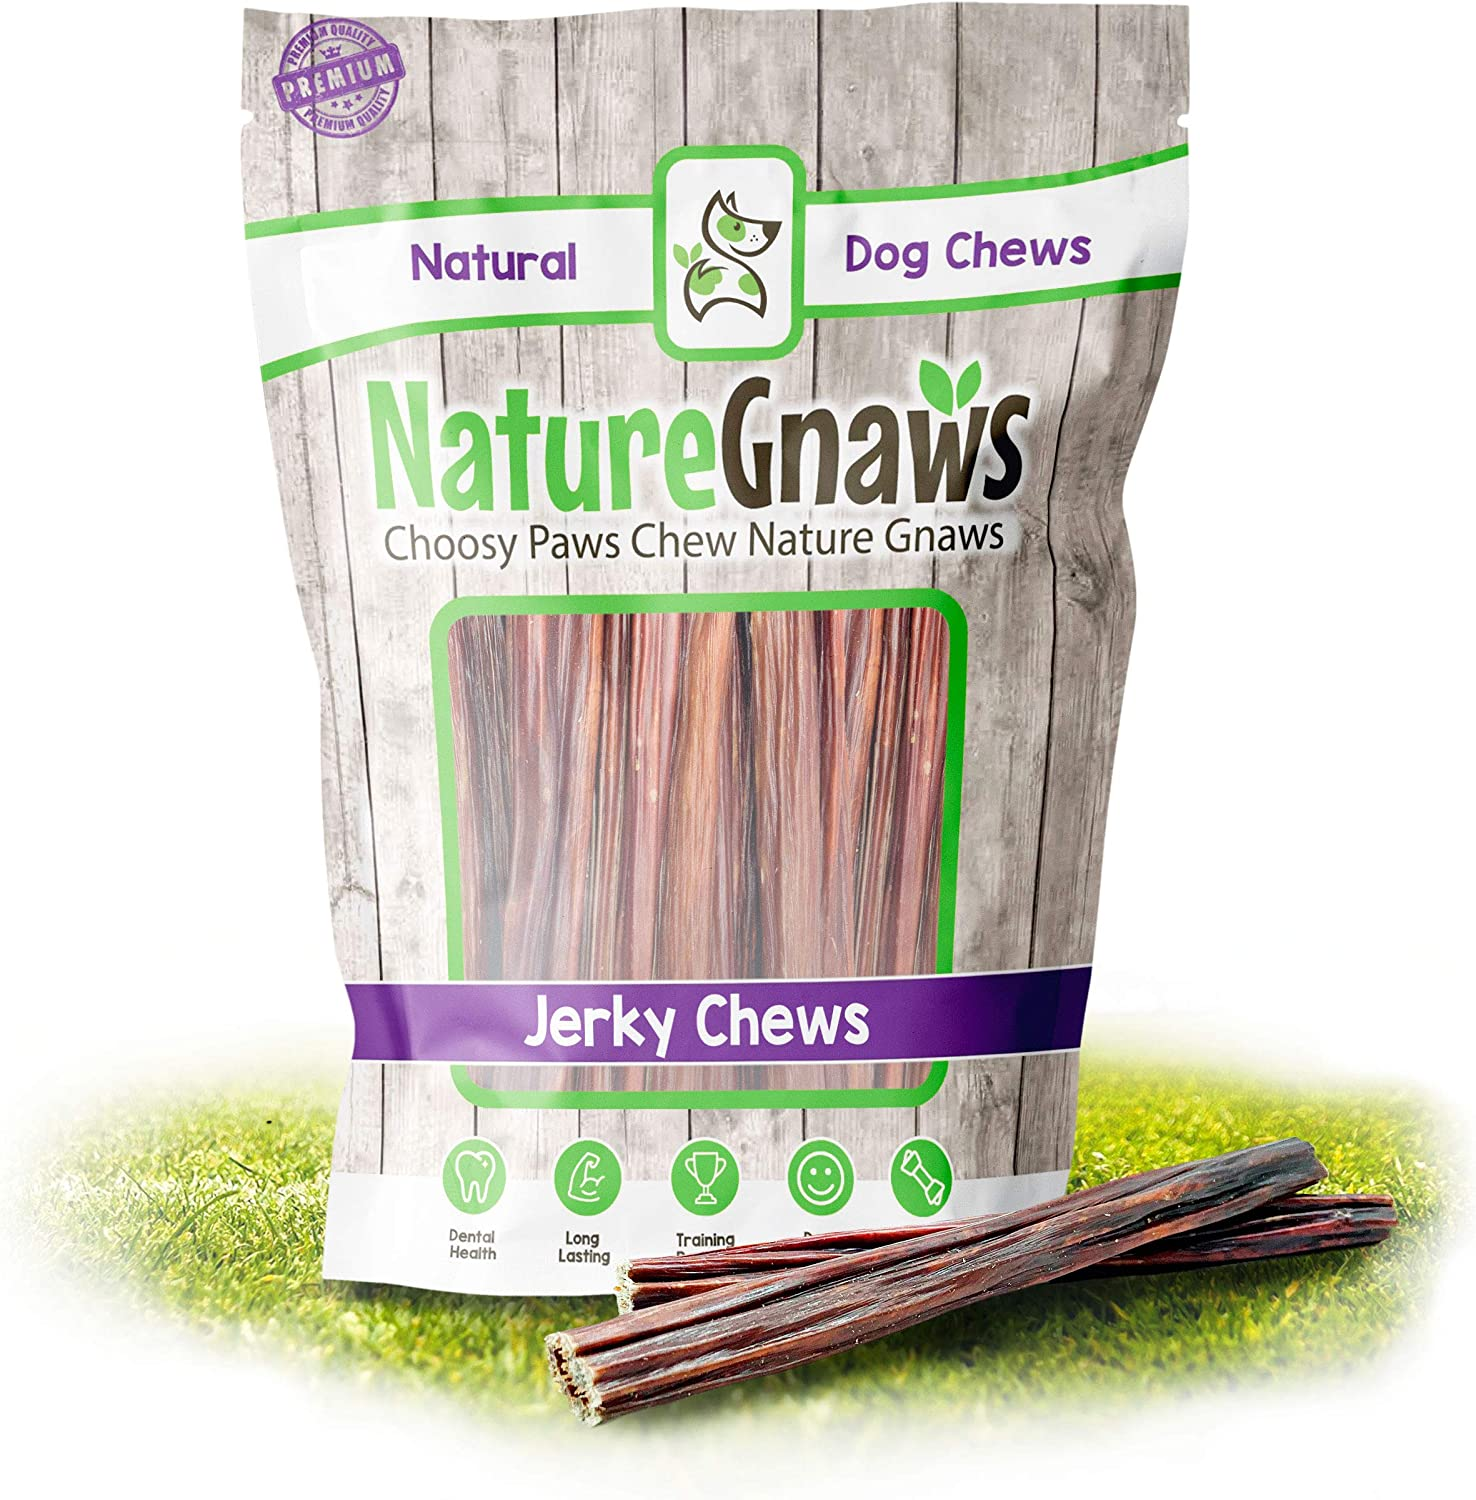 Nature Gnaws Junior Jerky Sticks for Dogs - Premium Natural Beef Gullet Bones - Simple Single Ingredient Tasty Dog Chew Treats - Rawhide Free - 5-6 Inch